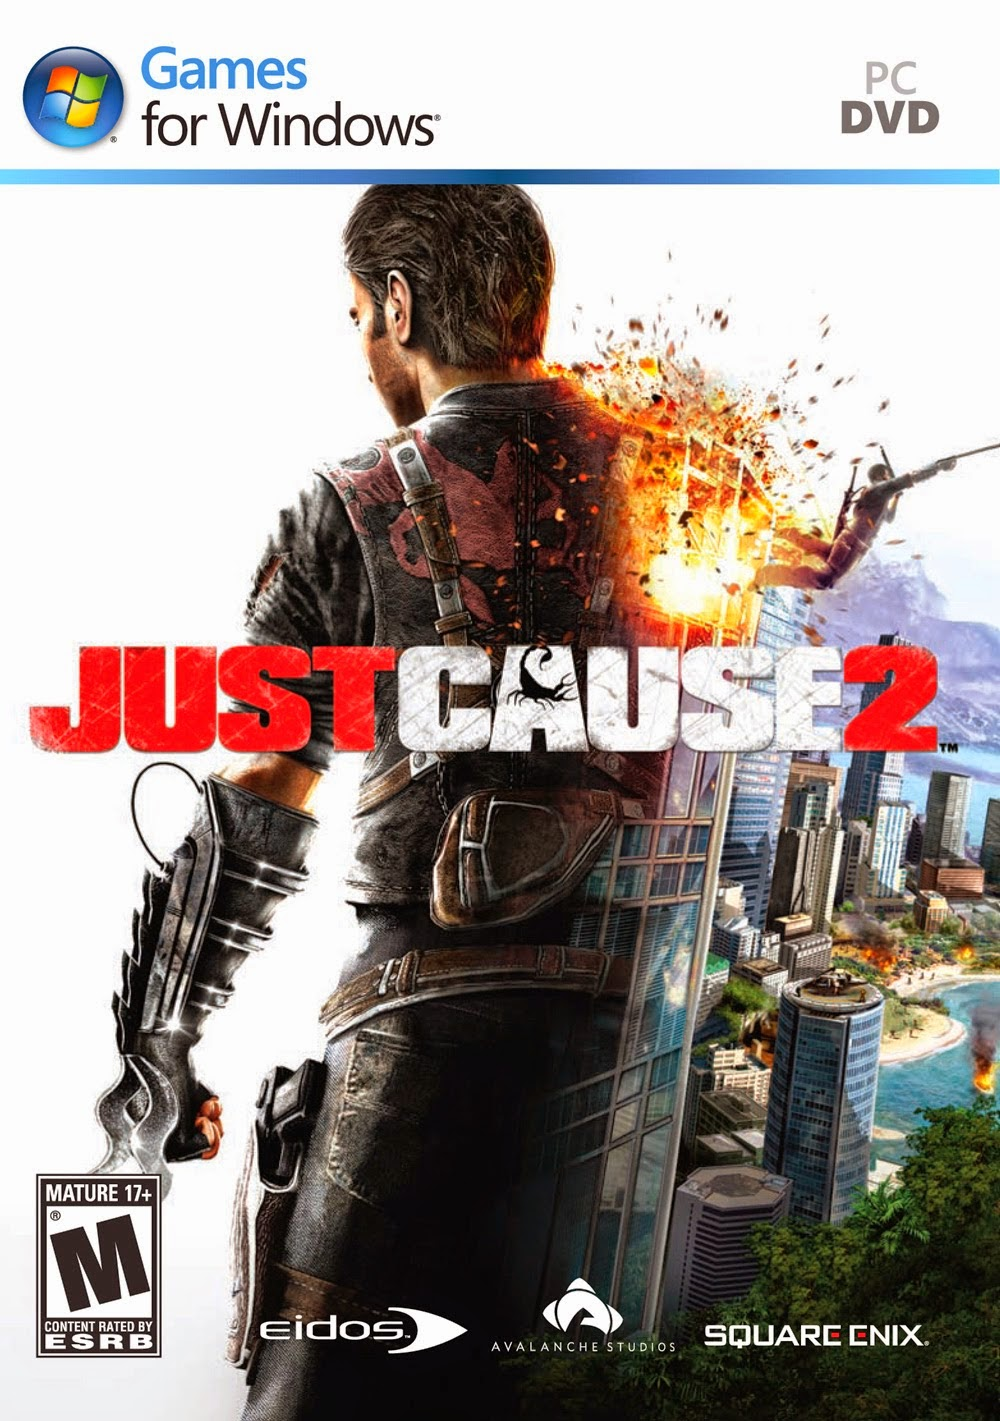 Downlaod Game Just Cause 2 Full Version